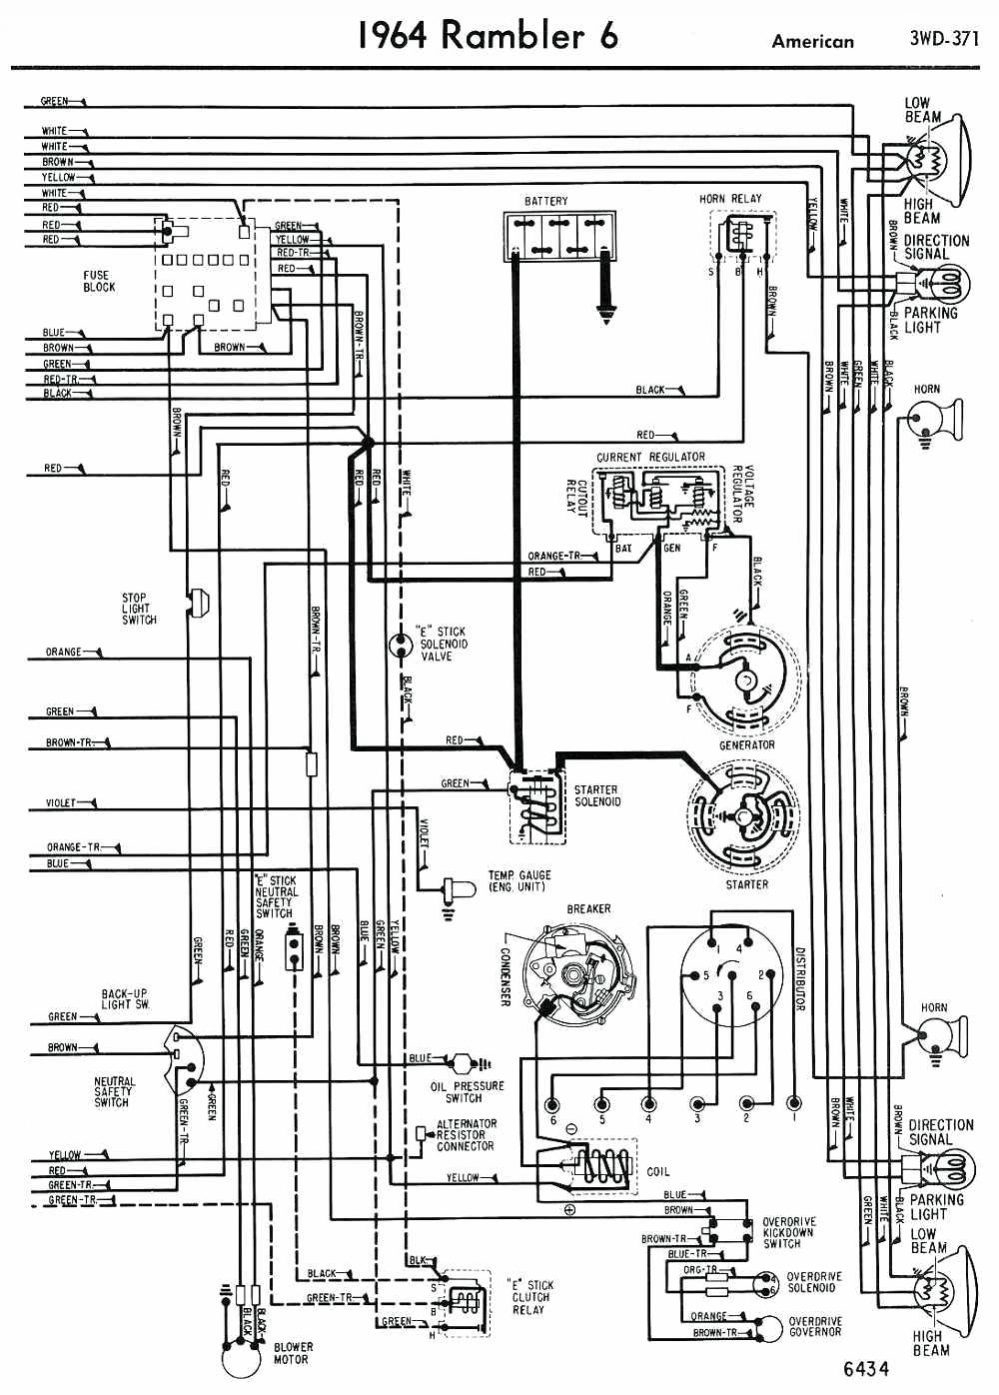 wiring diagram also white rodgers programmable thermostat further